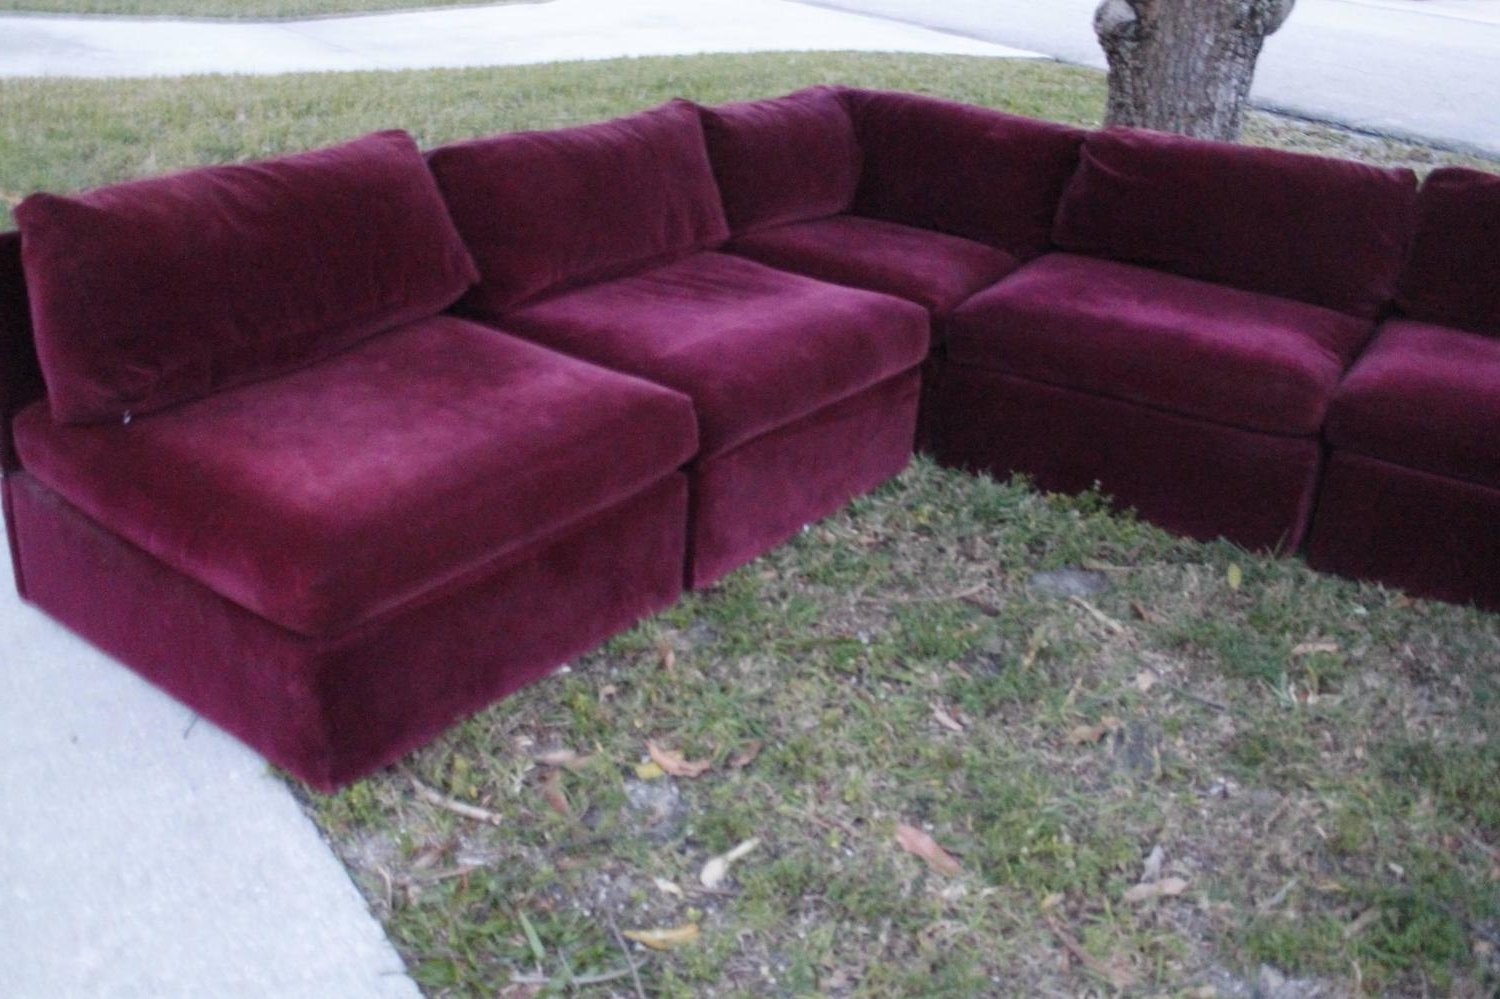 Vintage Sectional Sofas throughout Favorite Milo Baughman For Thayer Coggin Tagged Nine Piece Sectional Sofa